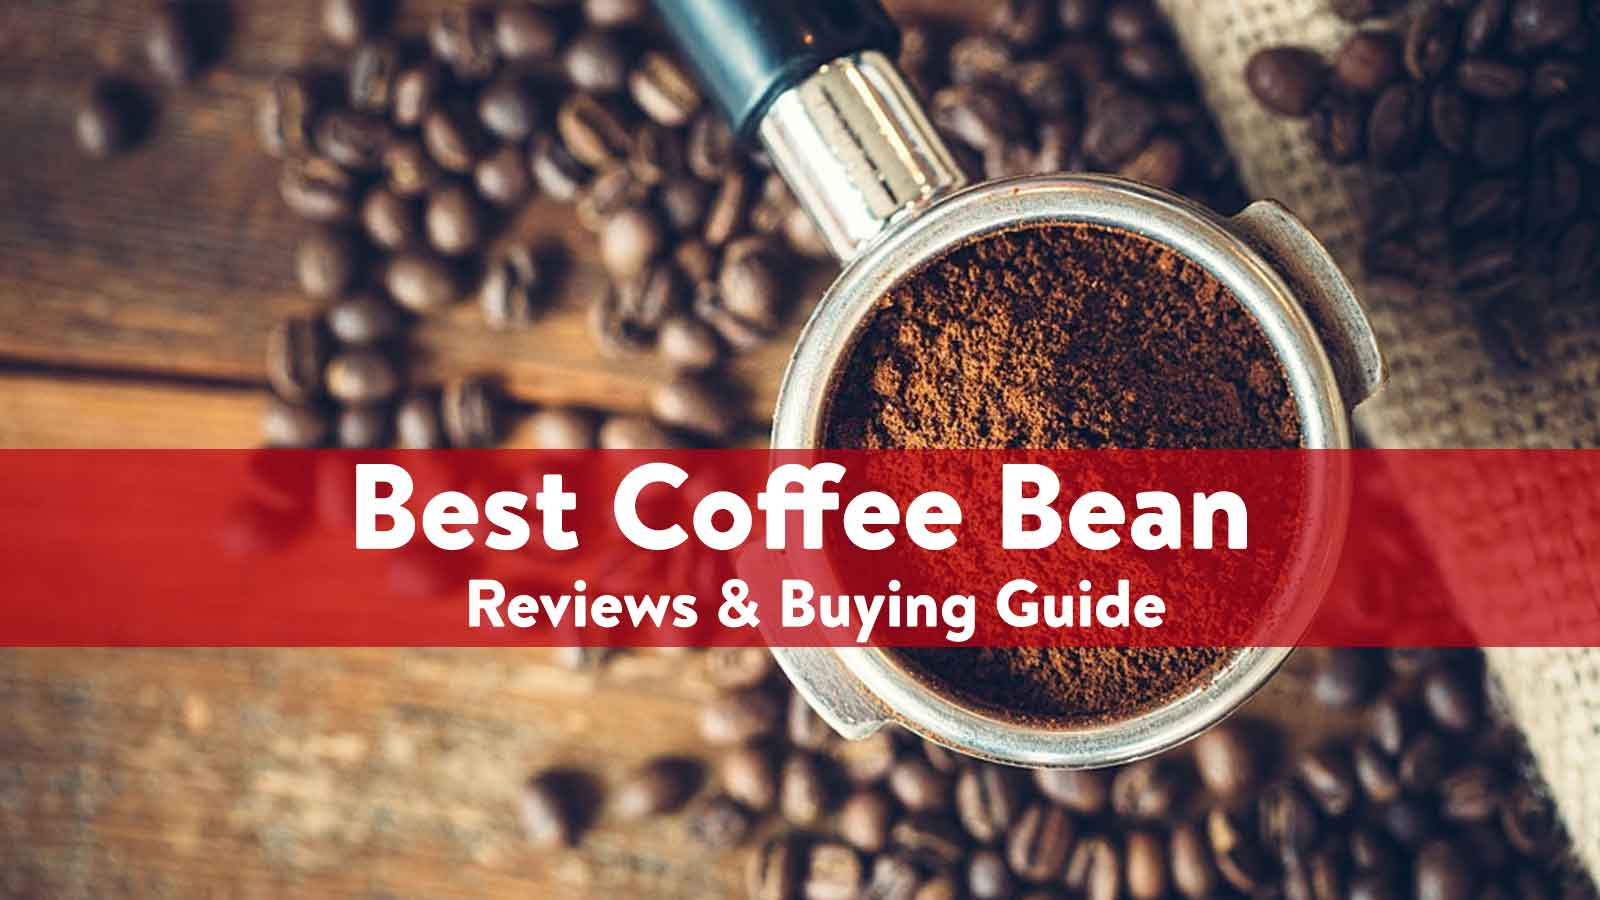 Best Coffee Bean